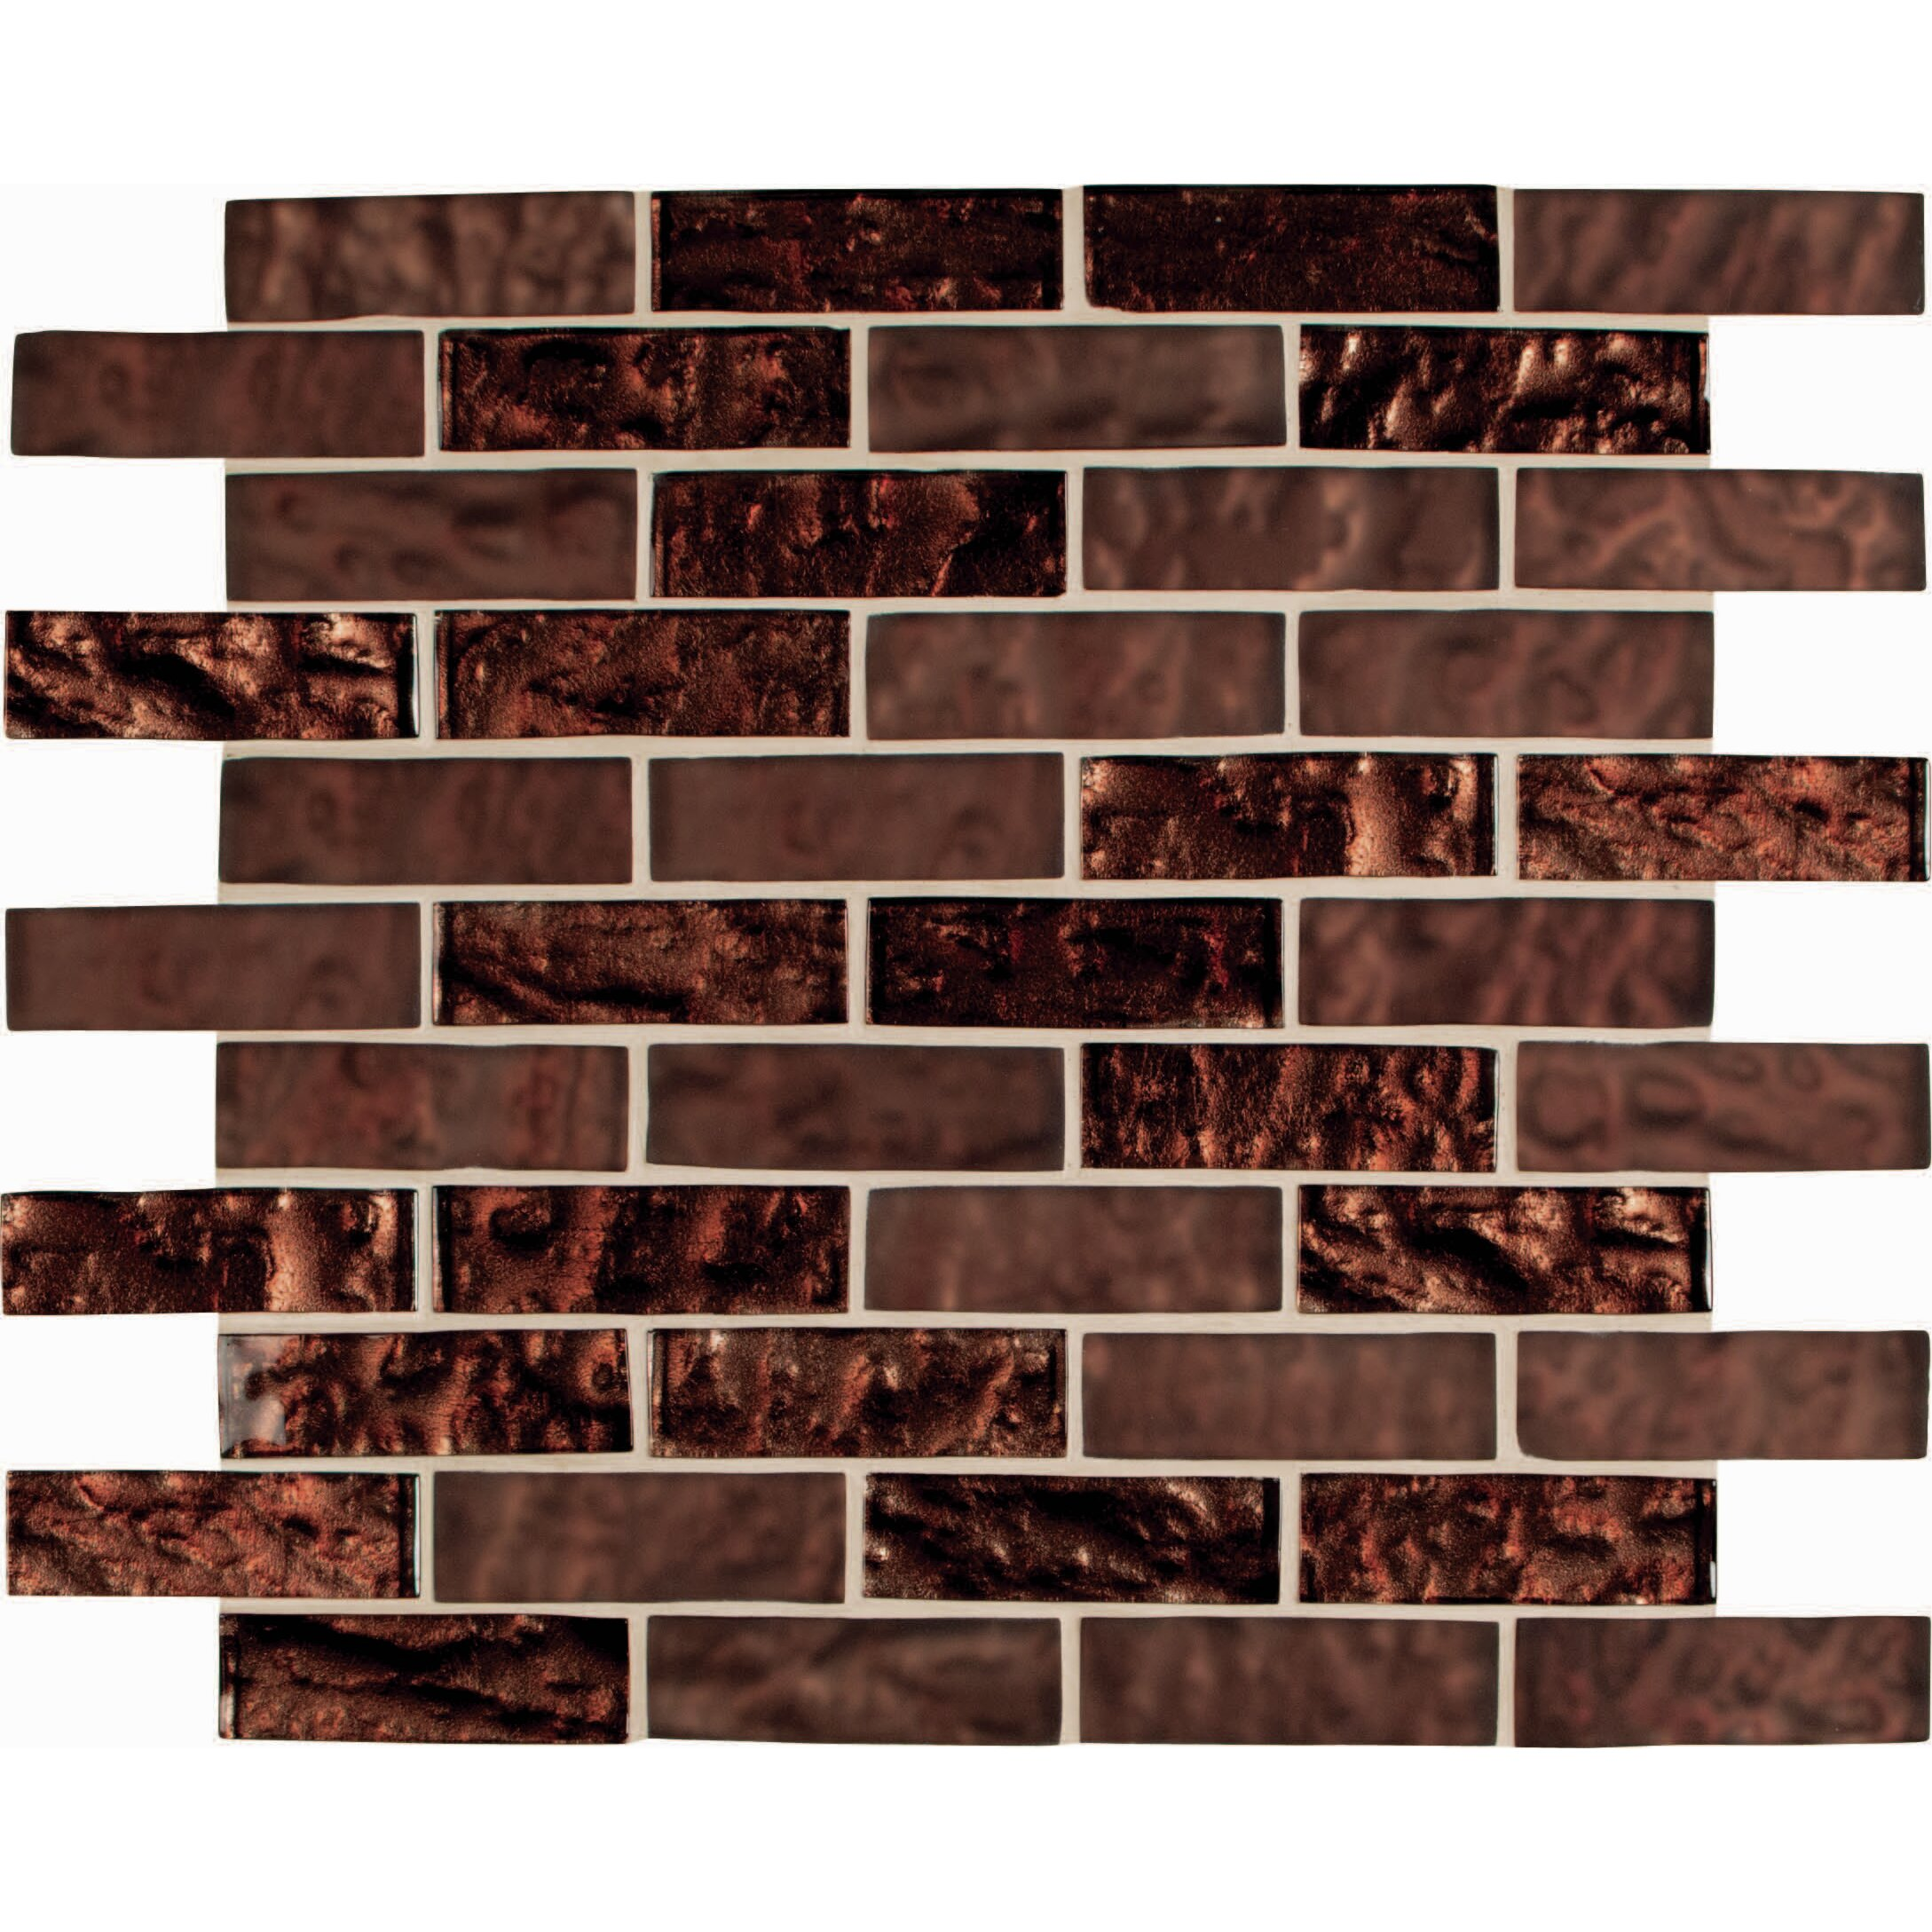 Msi copper leaf blend 1 x 3 glass mosaic tile in brown for Installing glass tile with mesh back